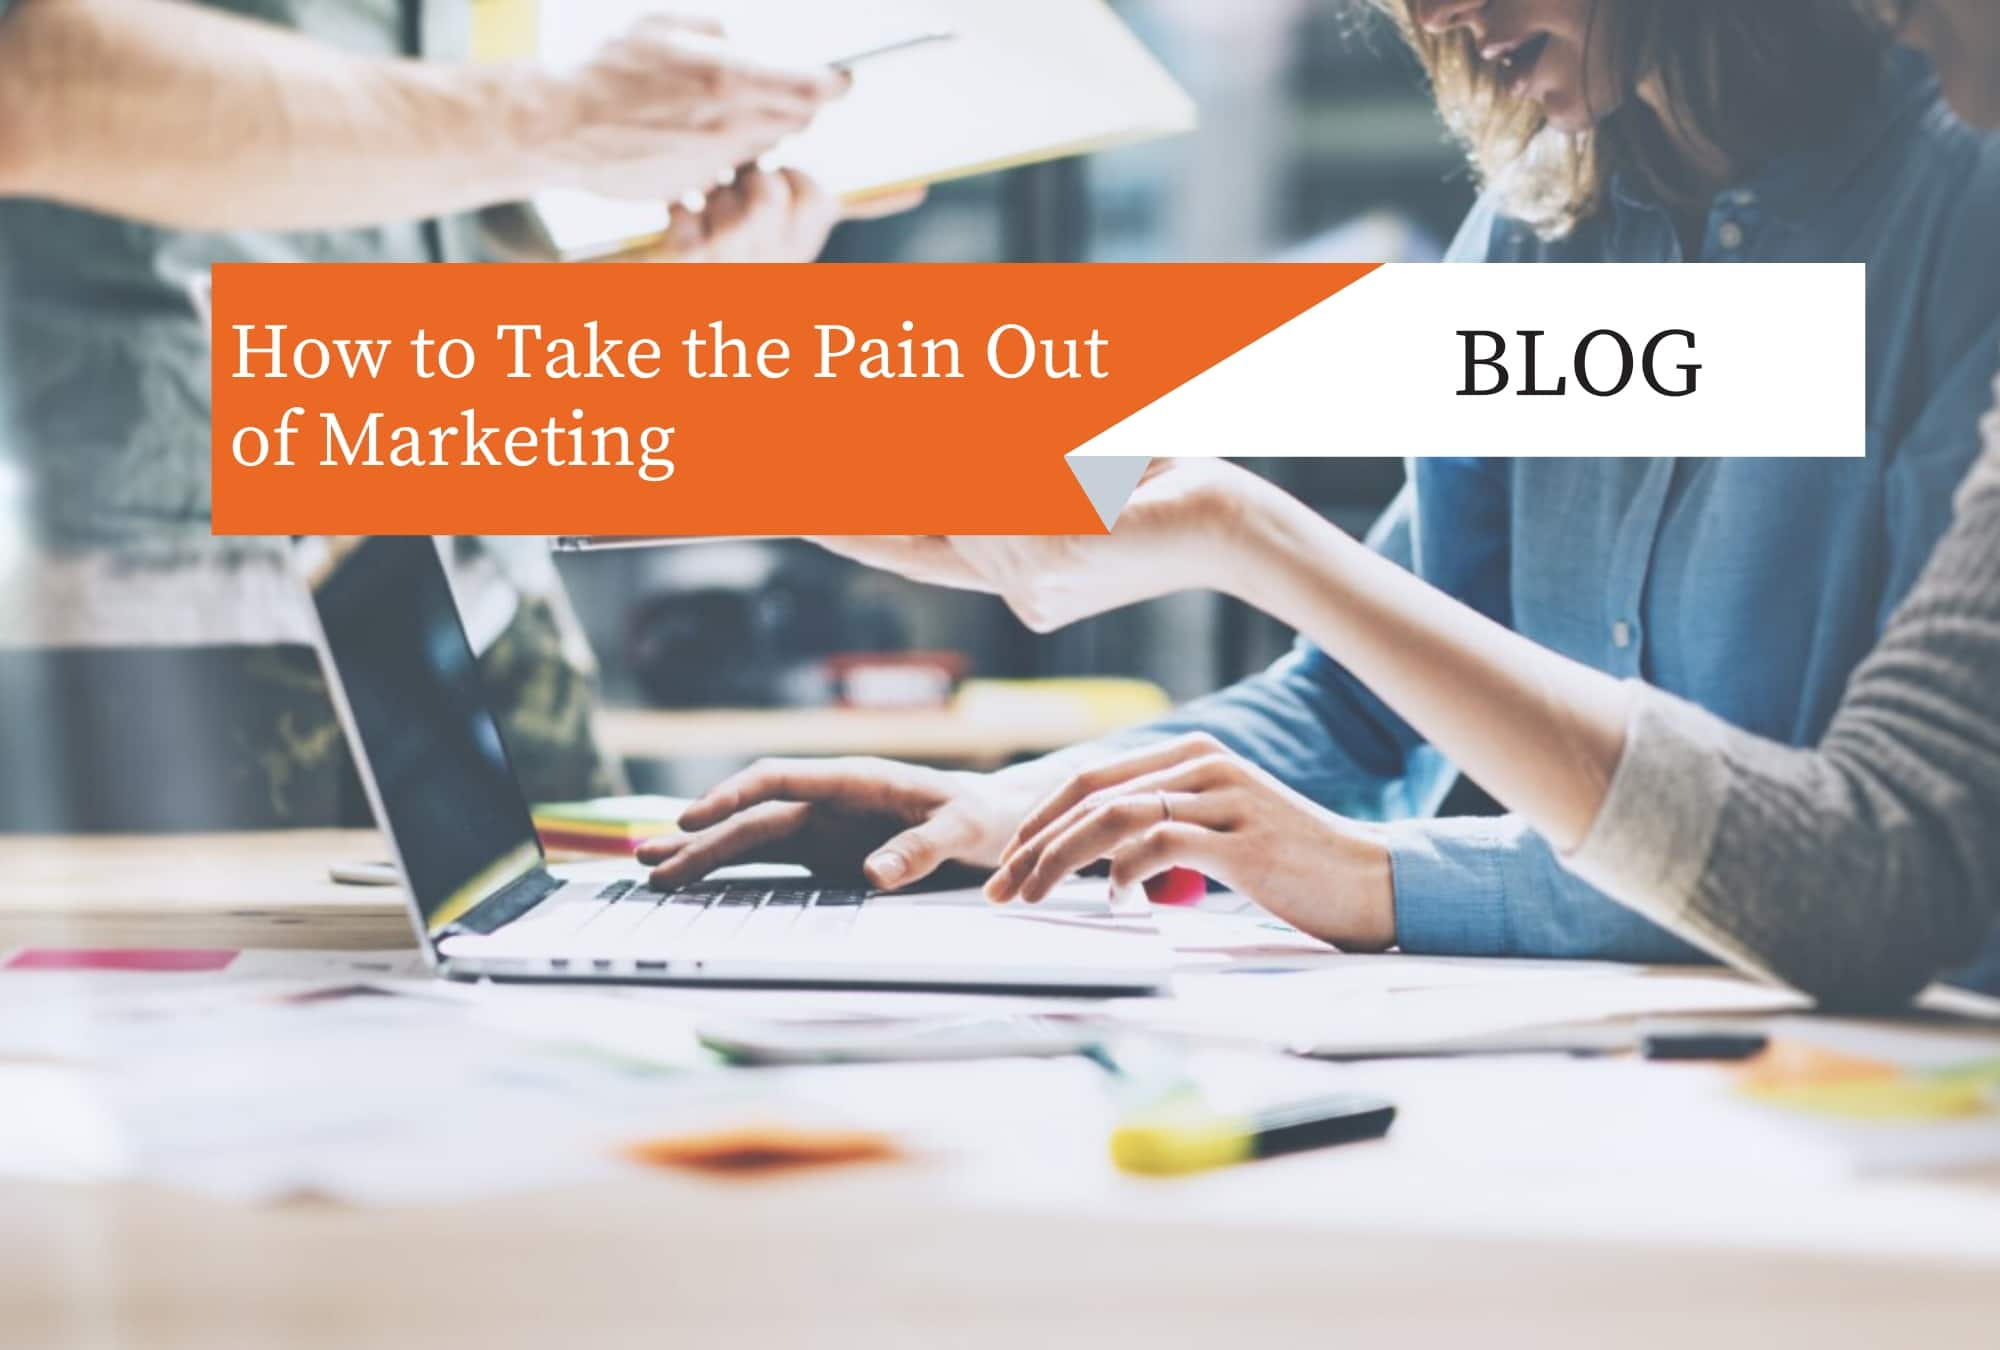 How to Take the Pain Out of Marketing